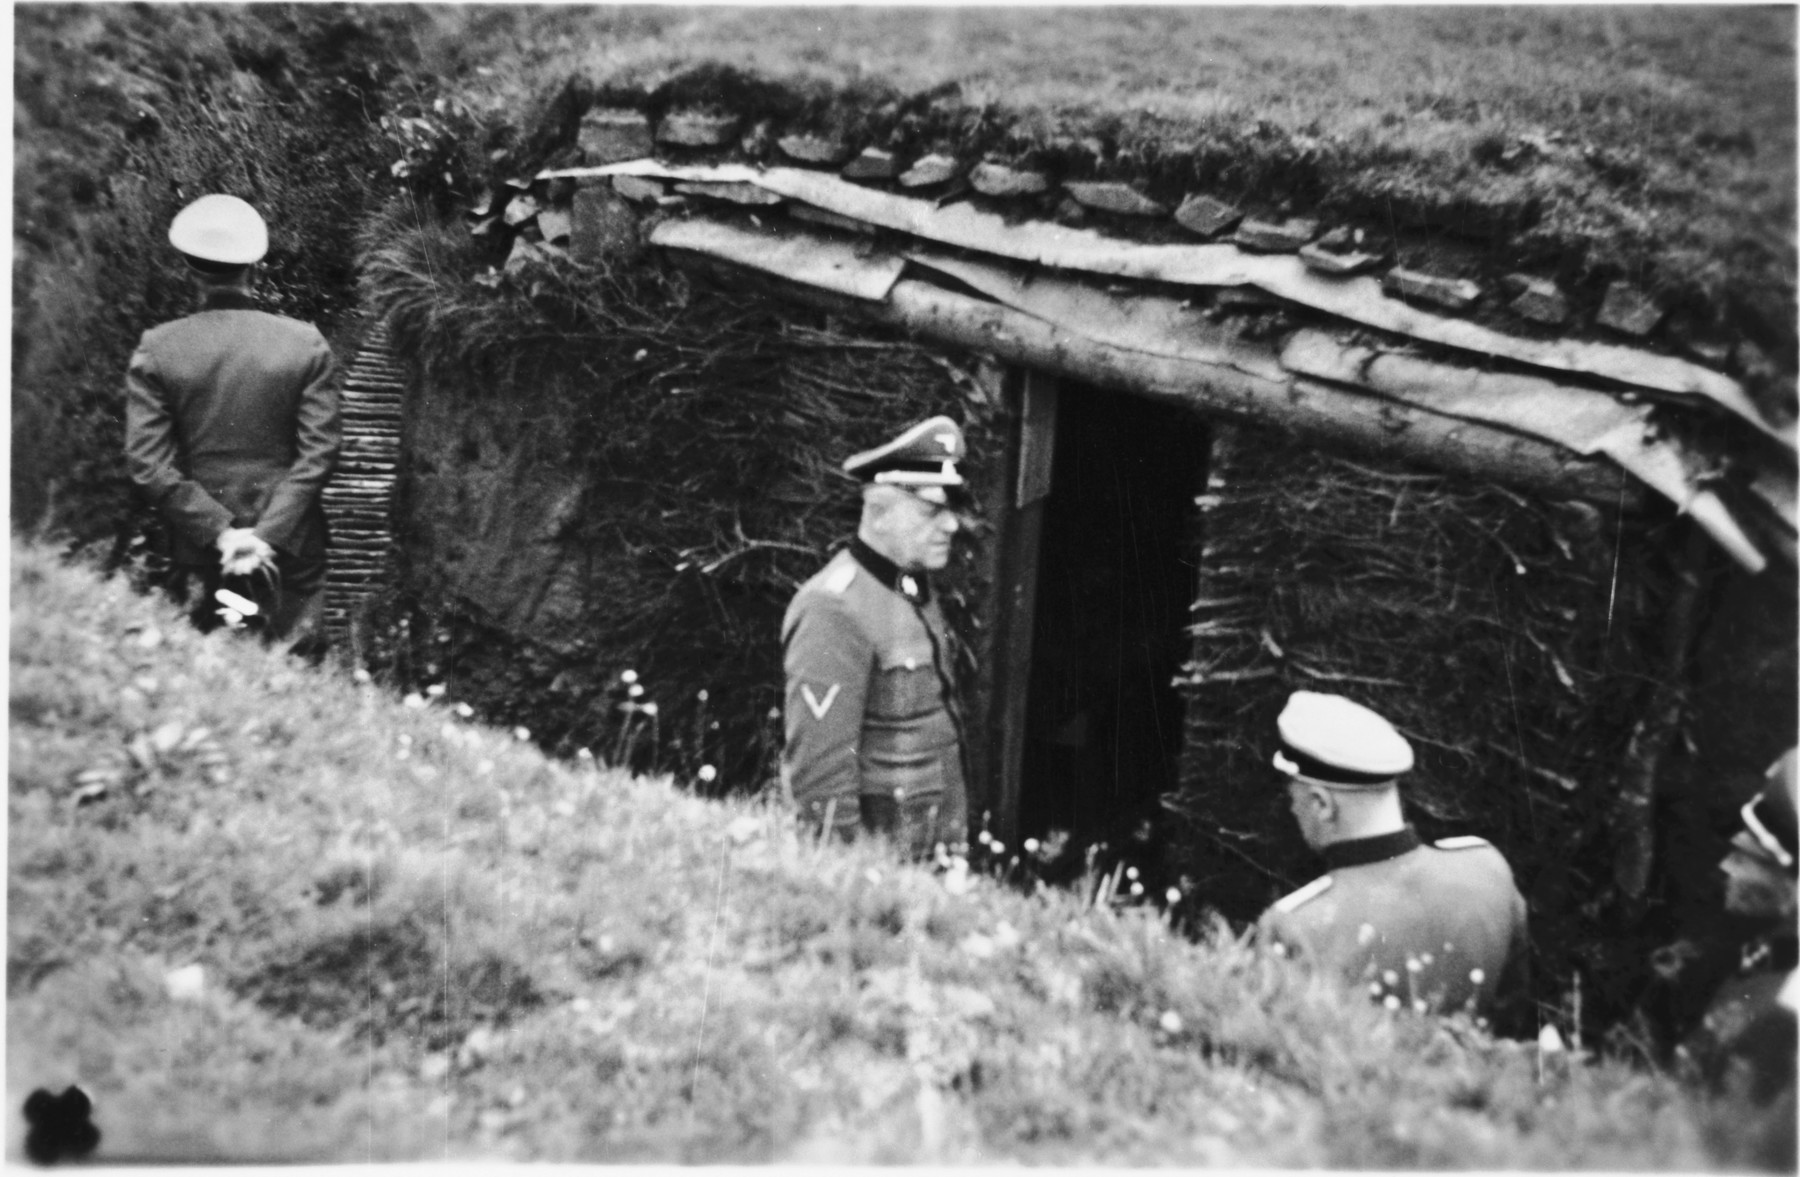 Commandant Hermann Pister, accompanied by two other SS officers, examines a bunker in the Hinzert concentration camp (a sub-camp of Buchenwald).